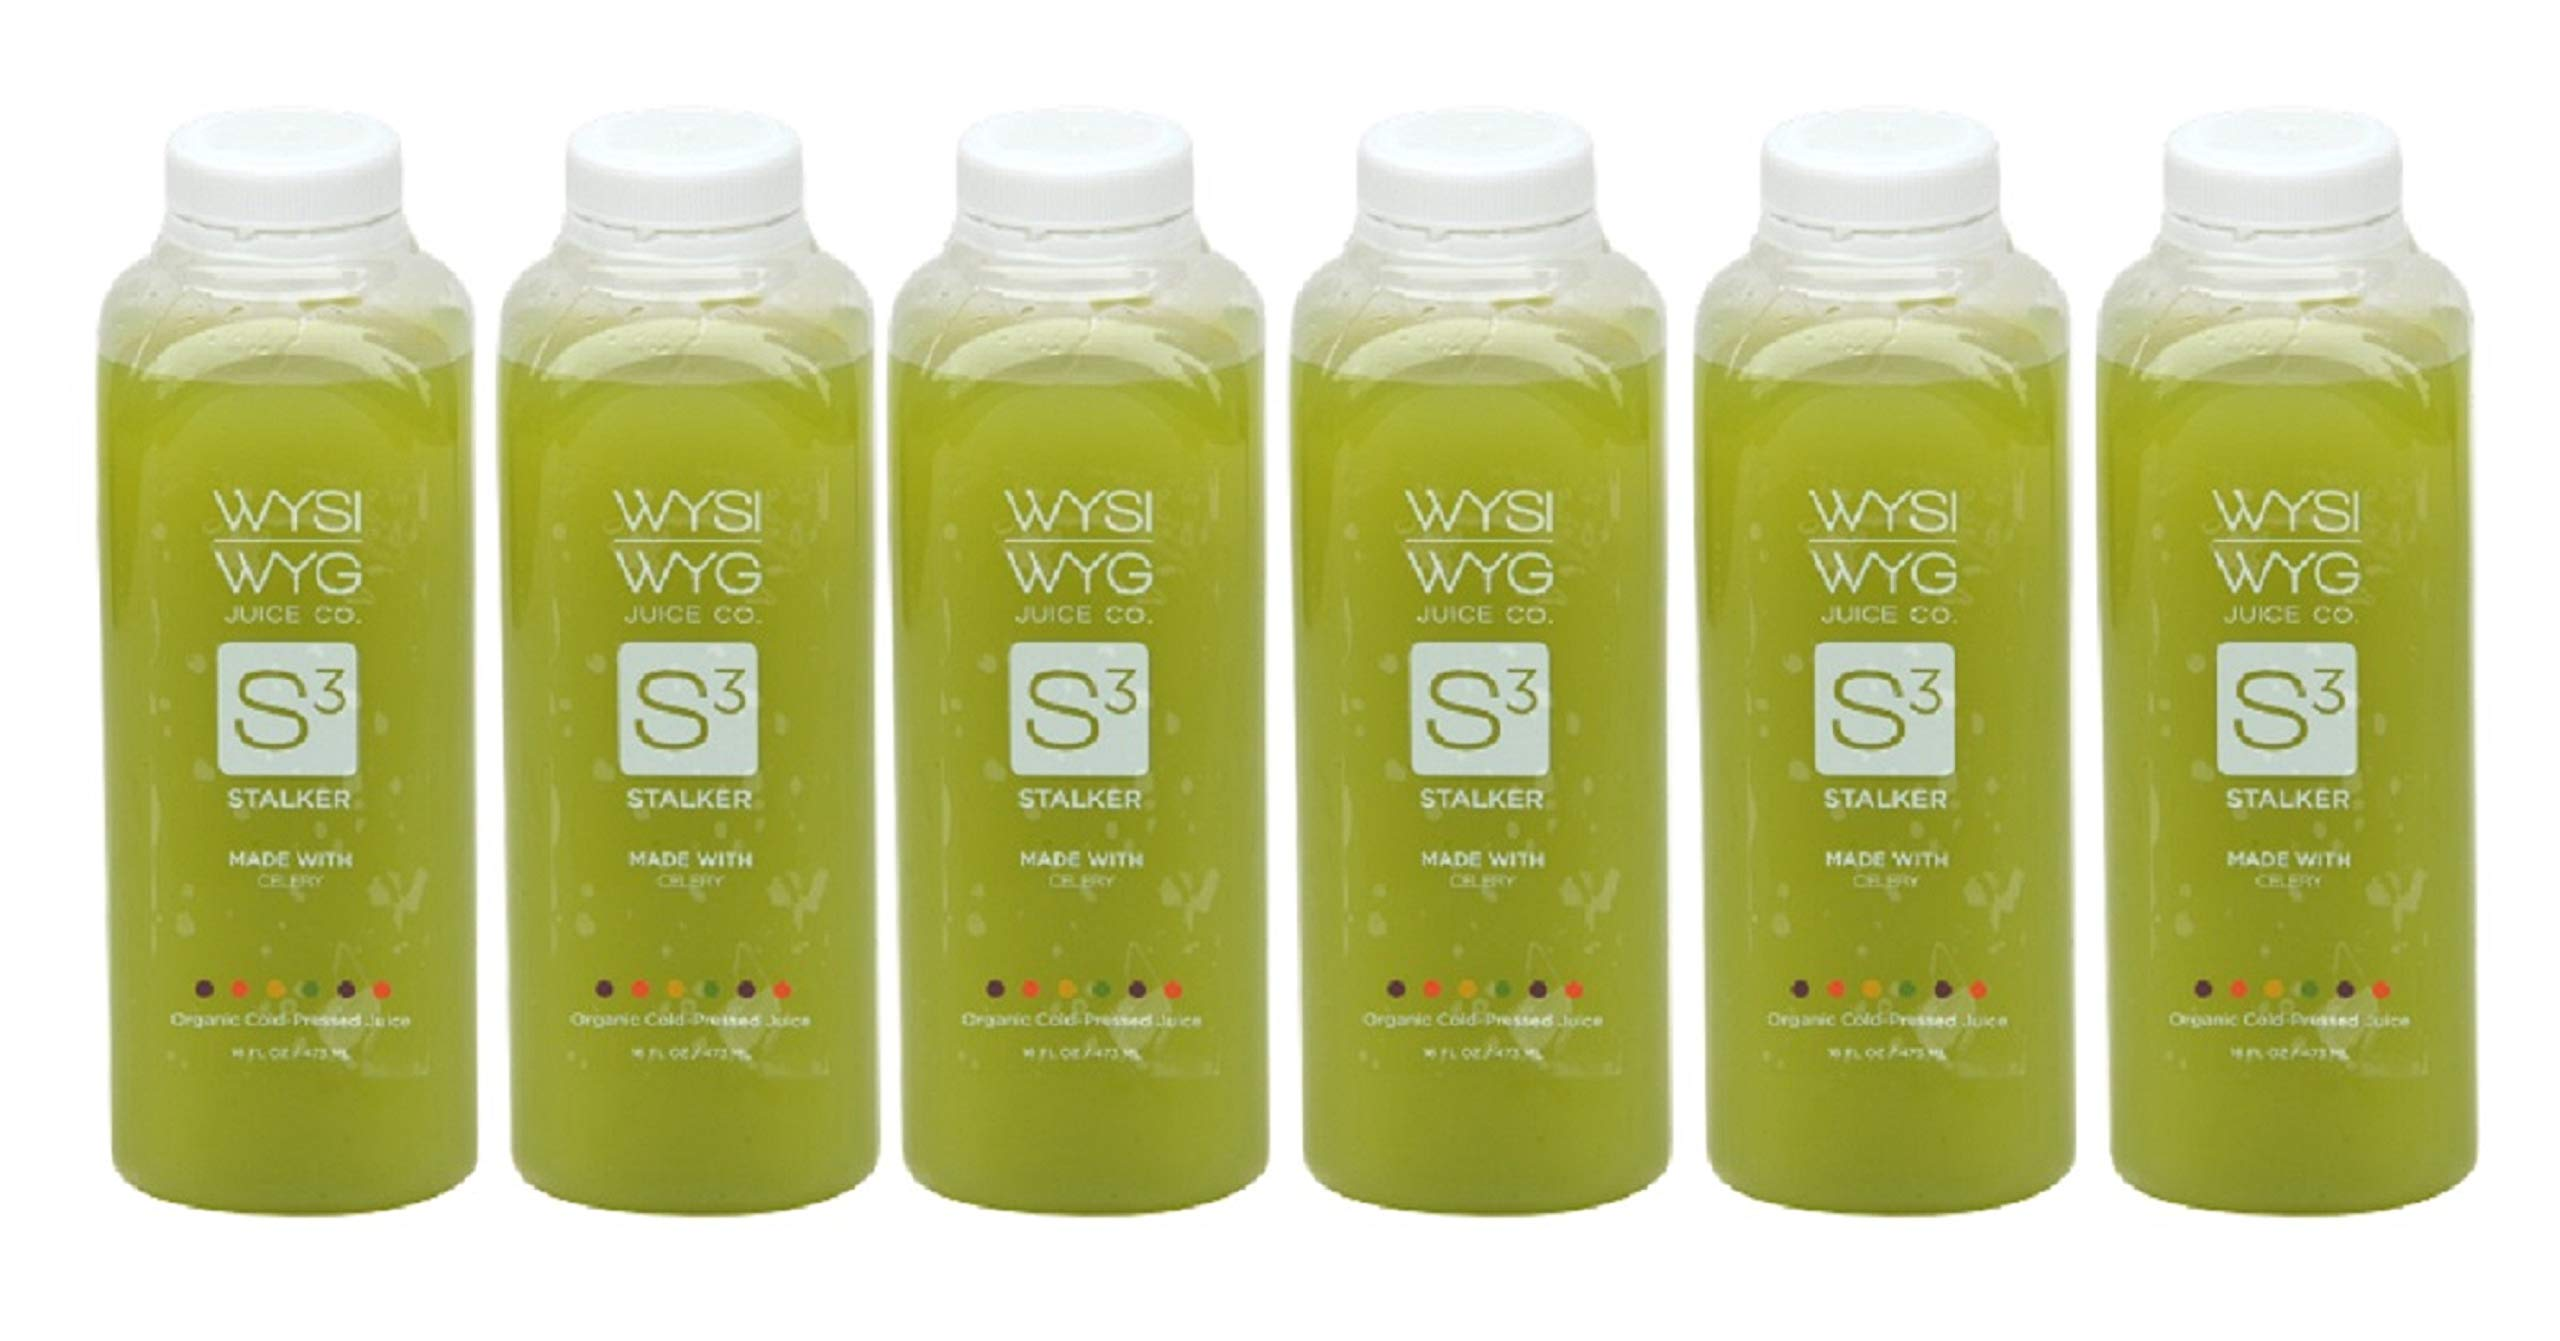 WYSIWYG Cold Pressed Plant Powered STRAIGHT UP Celery Juice (6 Pack 16oz) by WYSIWYG Juice Co.